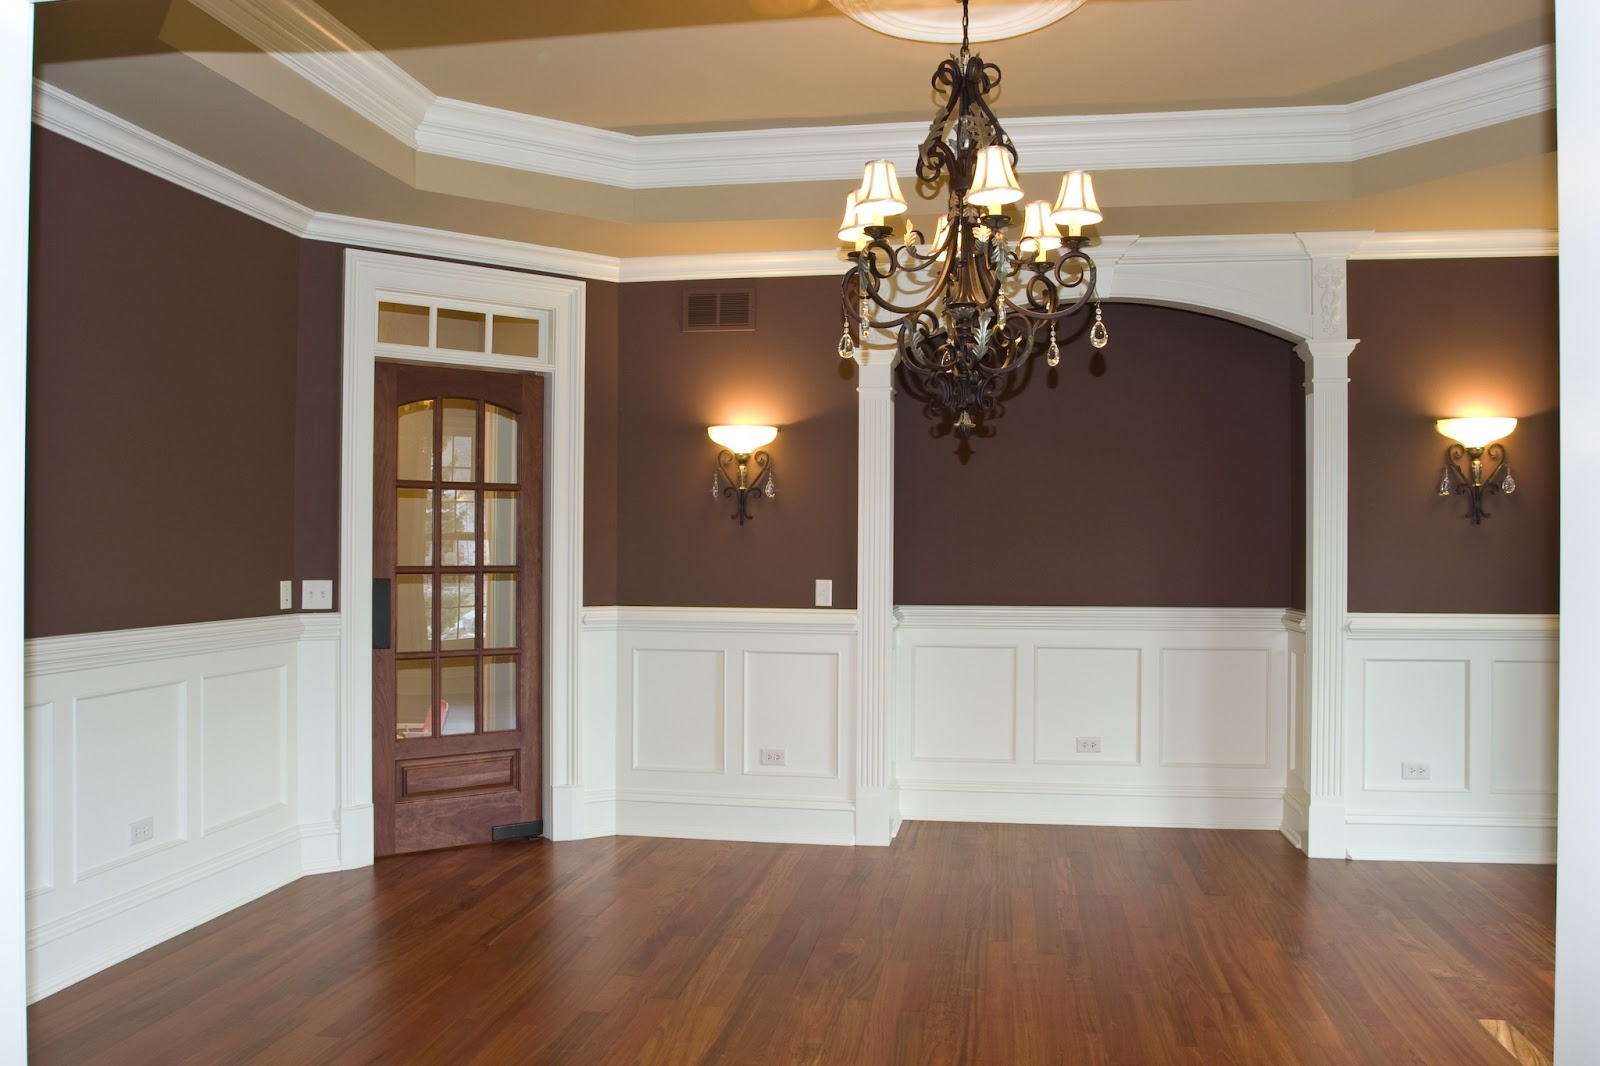 interior home painting ideas como faz revestimento quartzo 18957